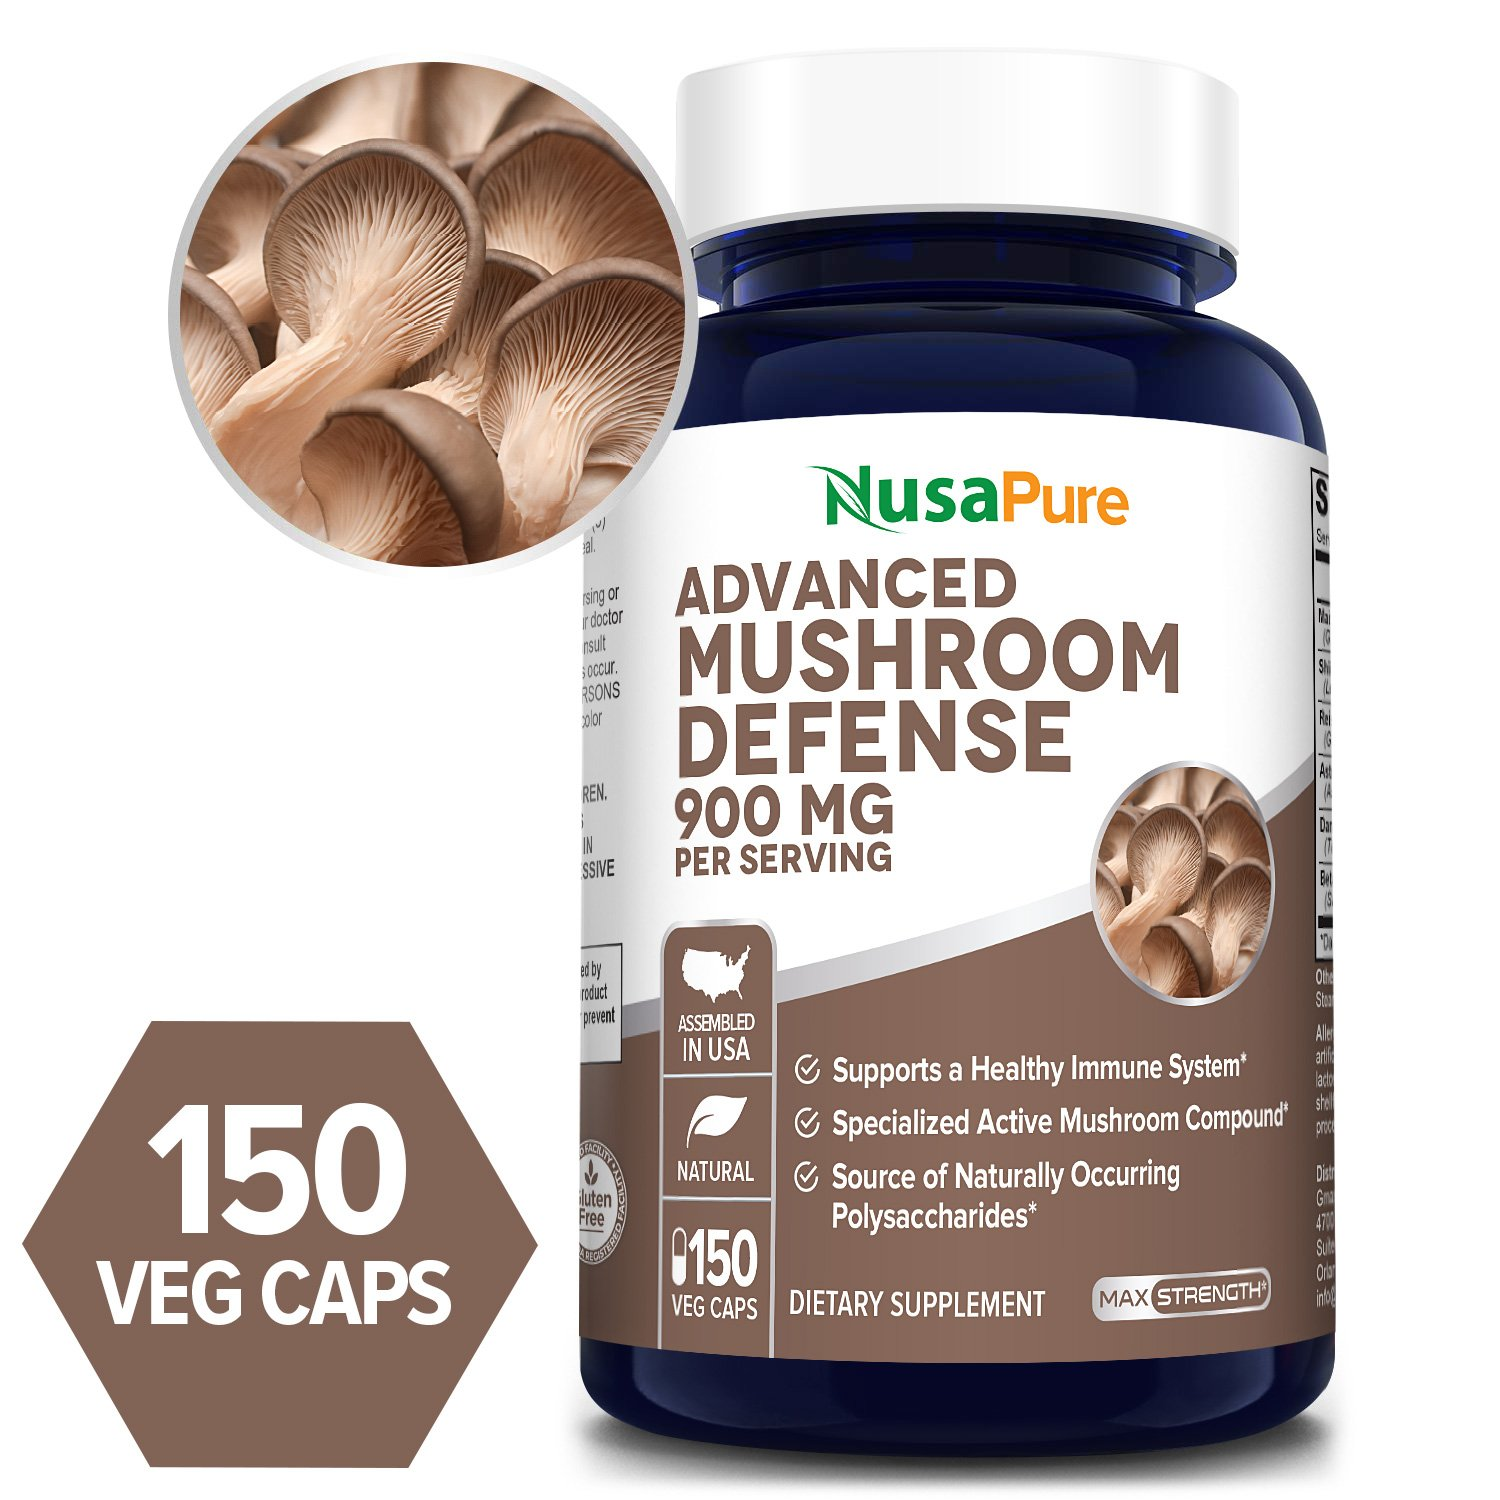 Advanced Mushroom Defense 900 mg - 150 Veg Caps (100 % Vegetarian, Non-GMO & Gluten-free)